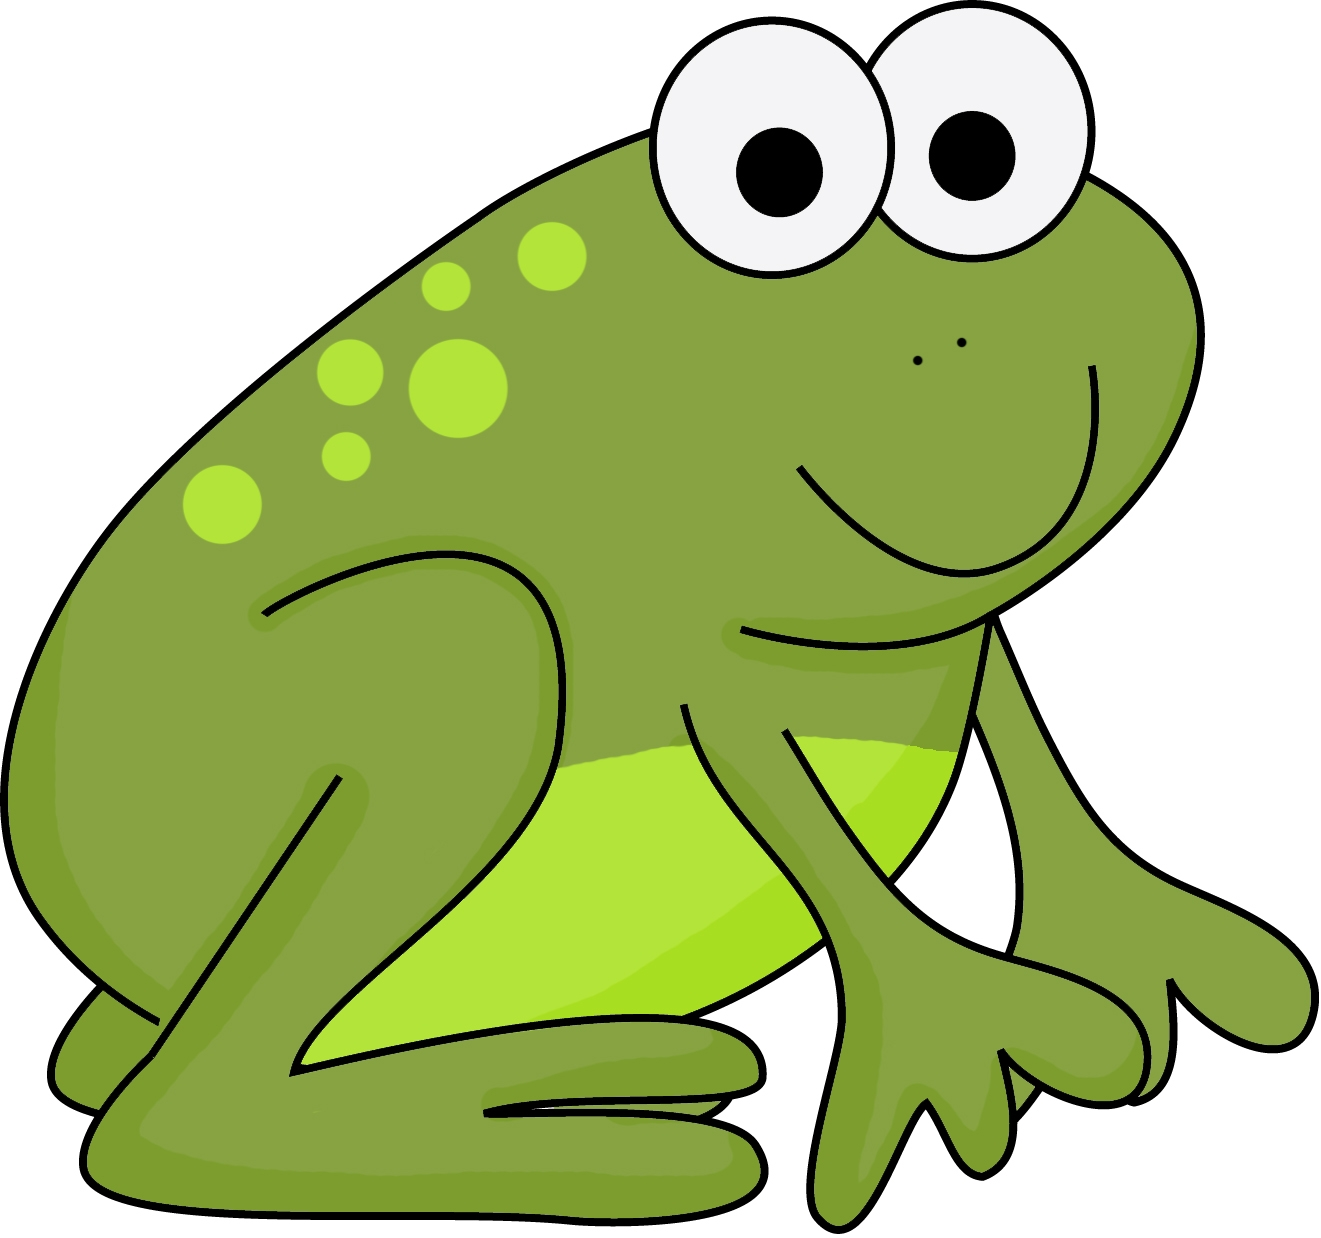 toad clipart at getdrawings com free for personal use toad clipart rh getdrawings com Clip Art Frog and Toad Together free frog and toad clipart